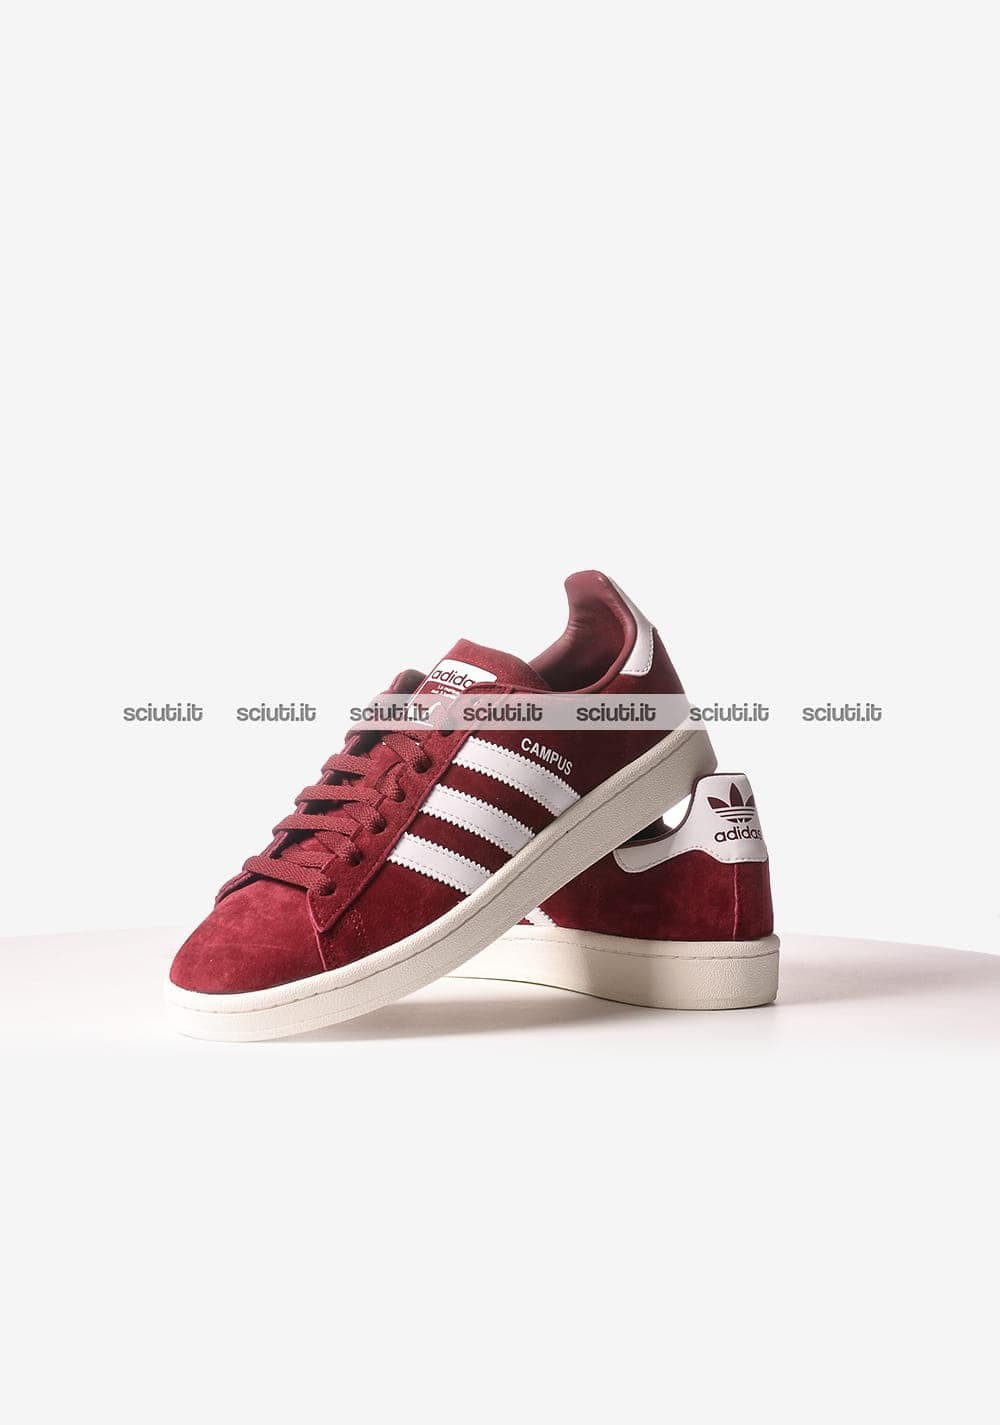 adidas campus bordeaux uomo